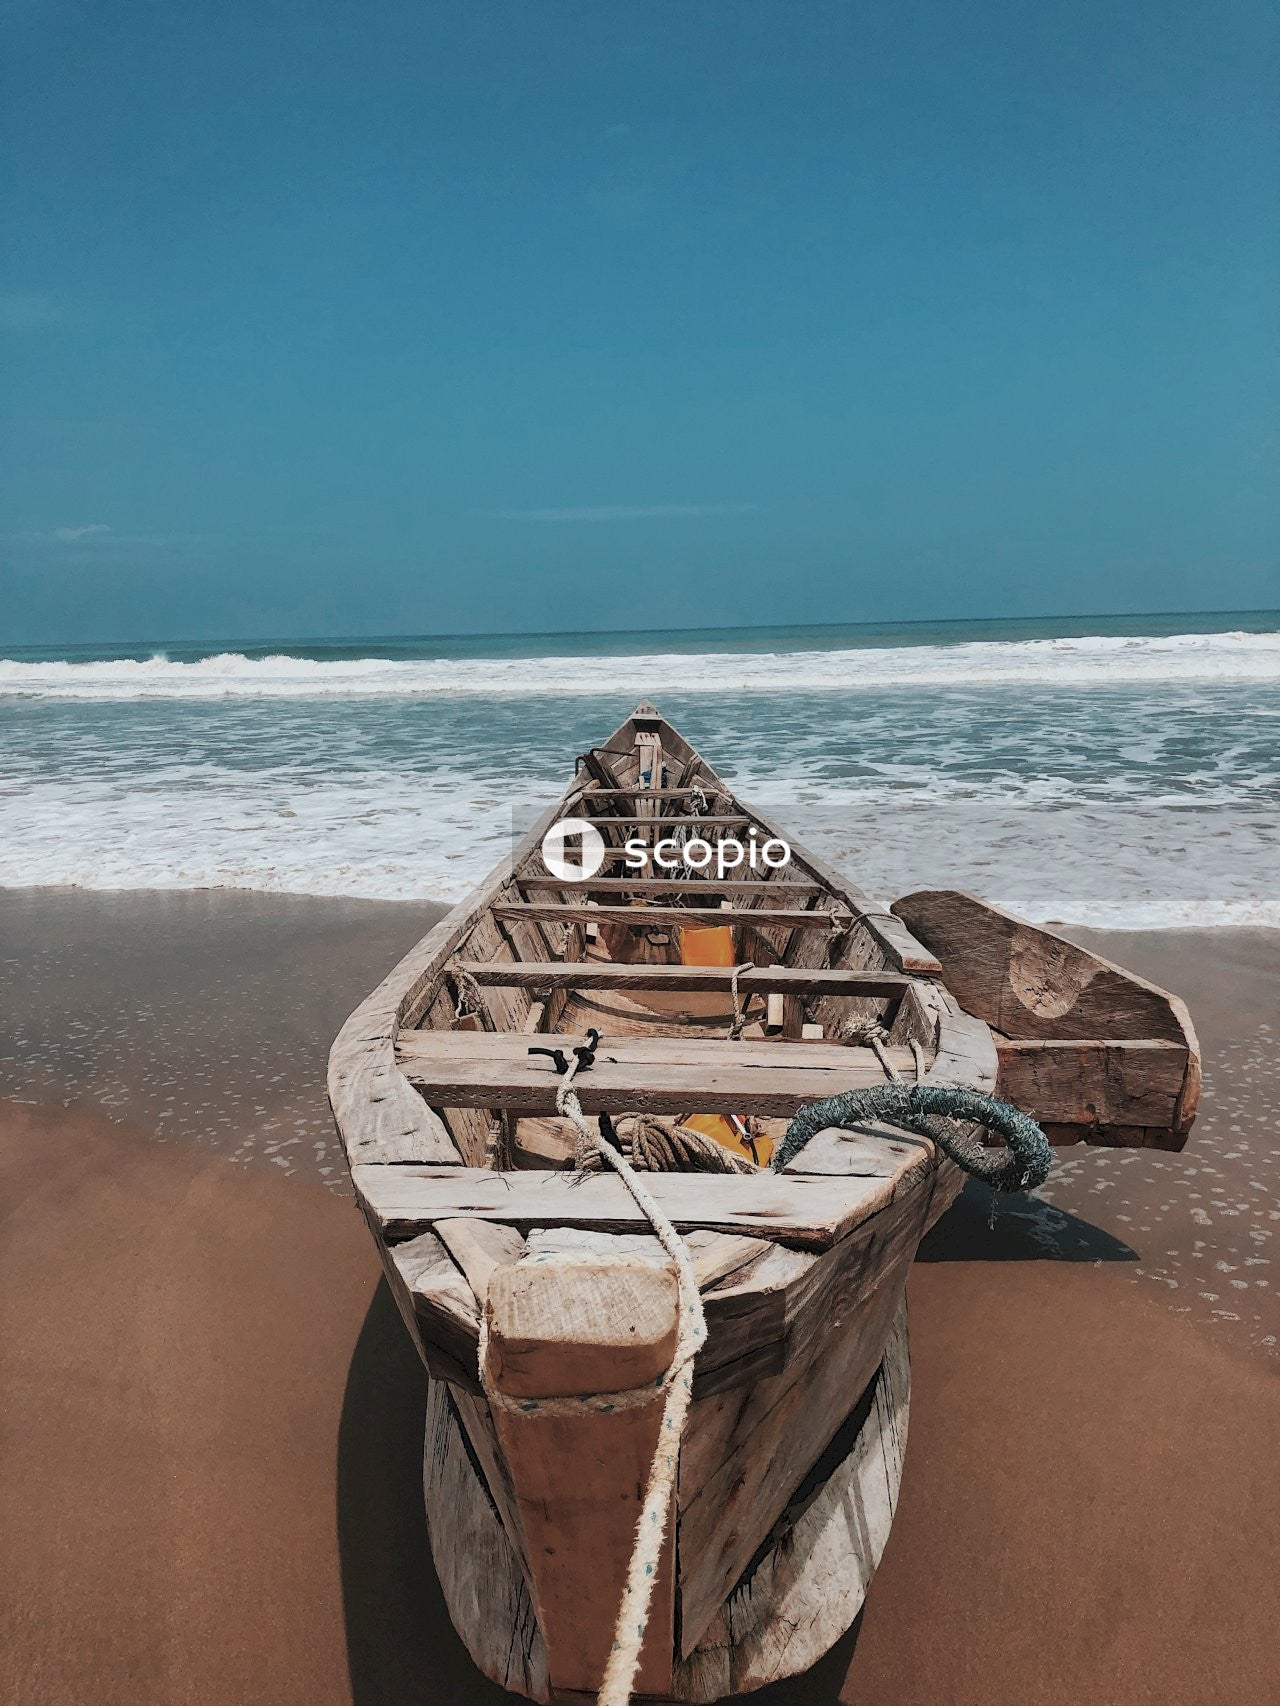 Brown wooden boat on brown sand near body of water